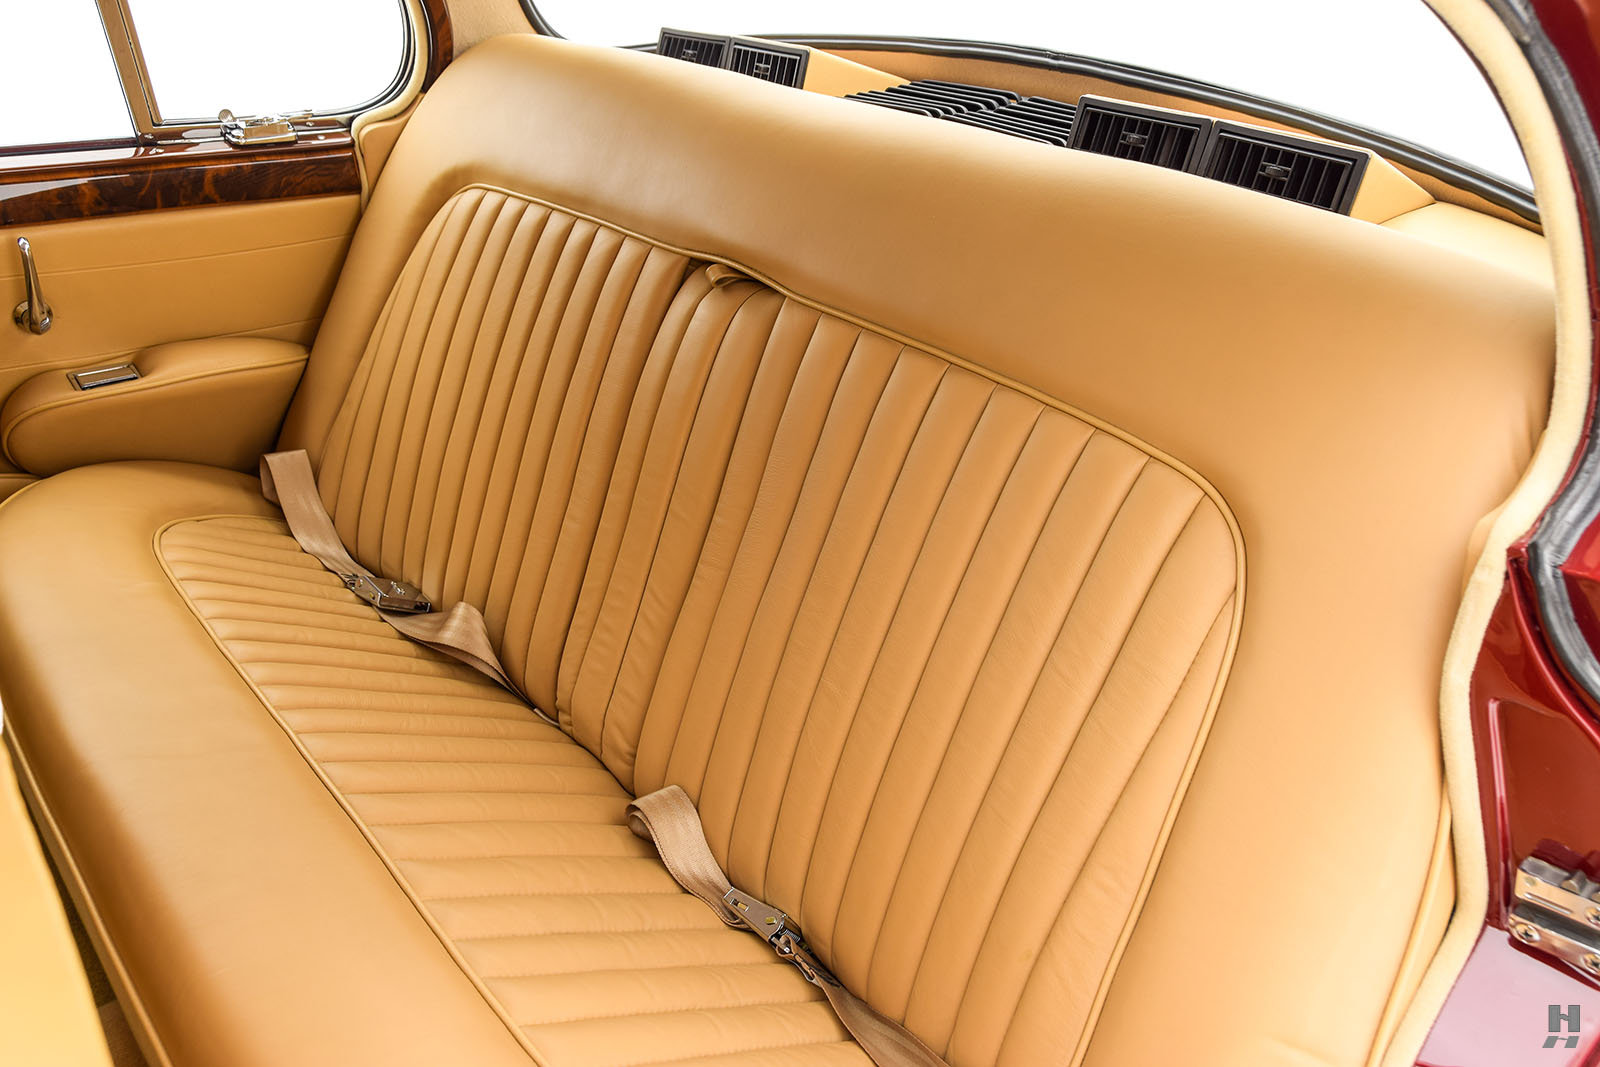 1962 JAGUAR MARK II 3.8 SALOON For Sale (picture 5 of 6)